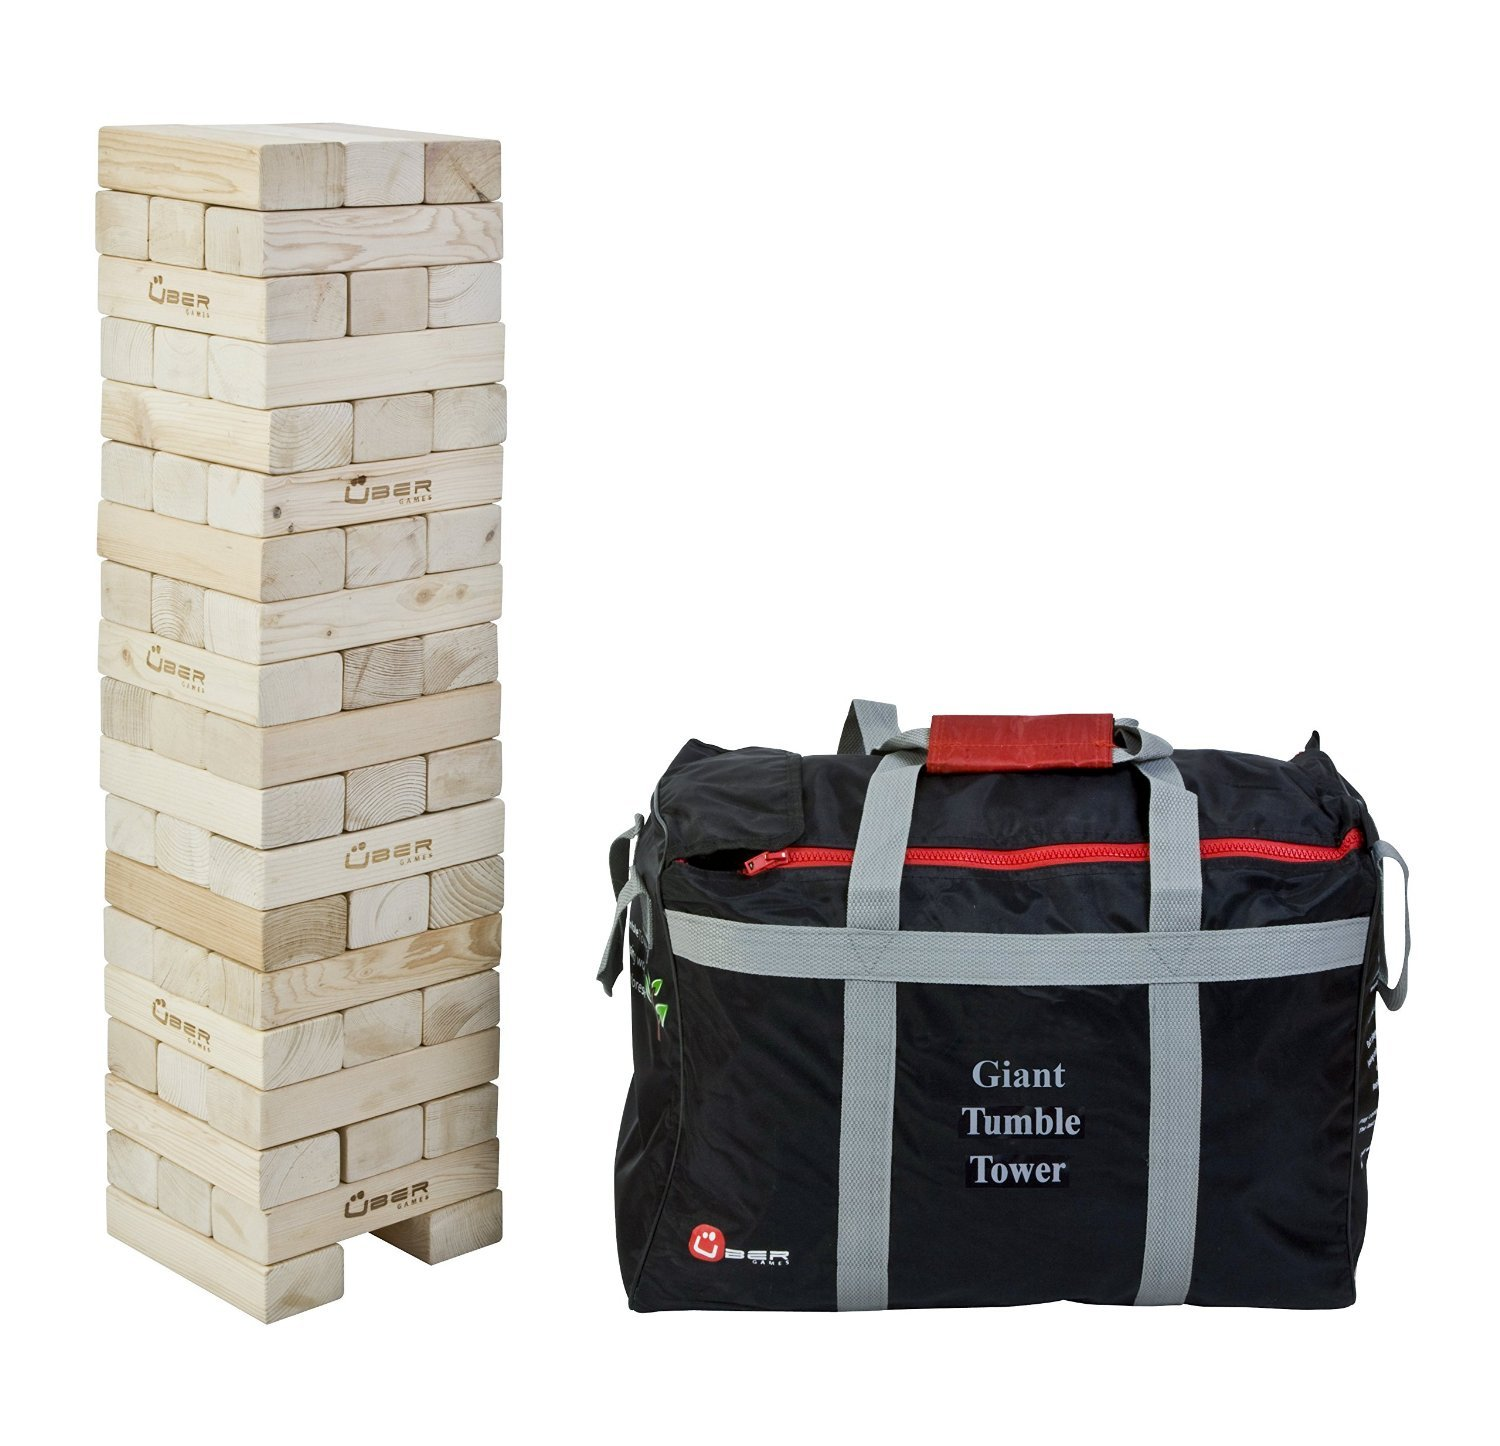 Uber Games Tumble Tower - Giant - Commercial Grade Hardwood by Uber Games